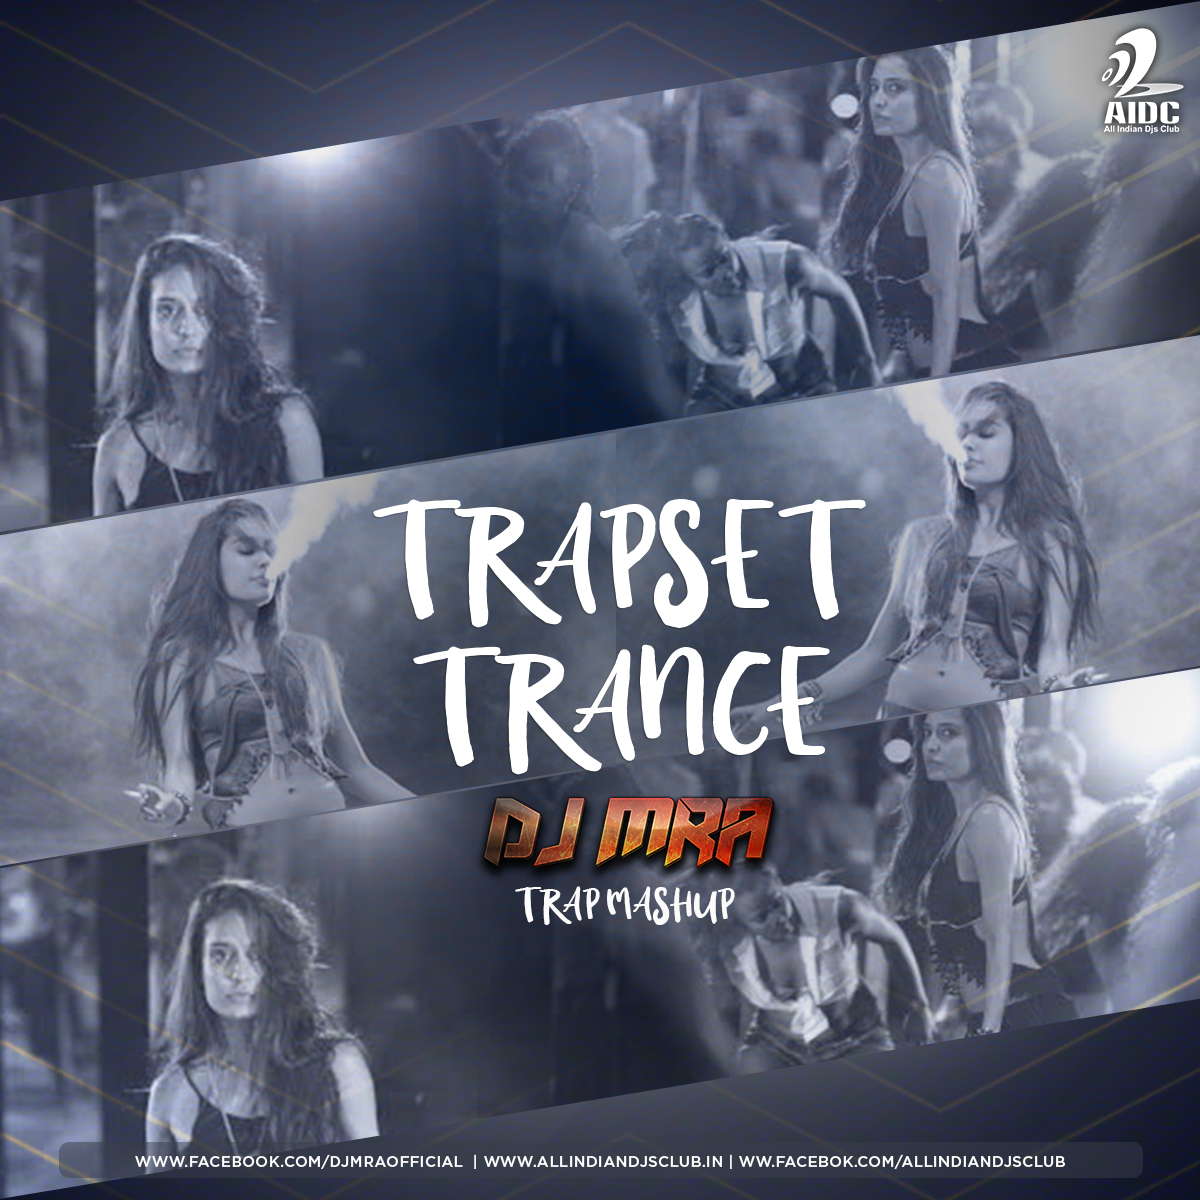 Trapset Trance